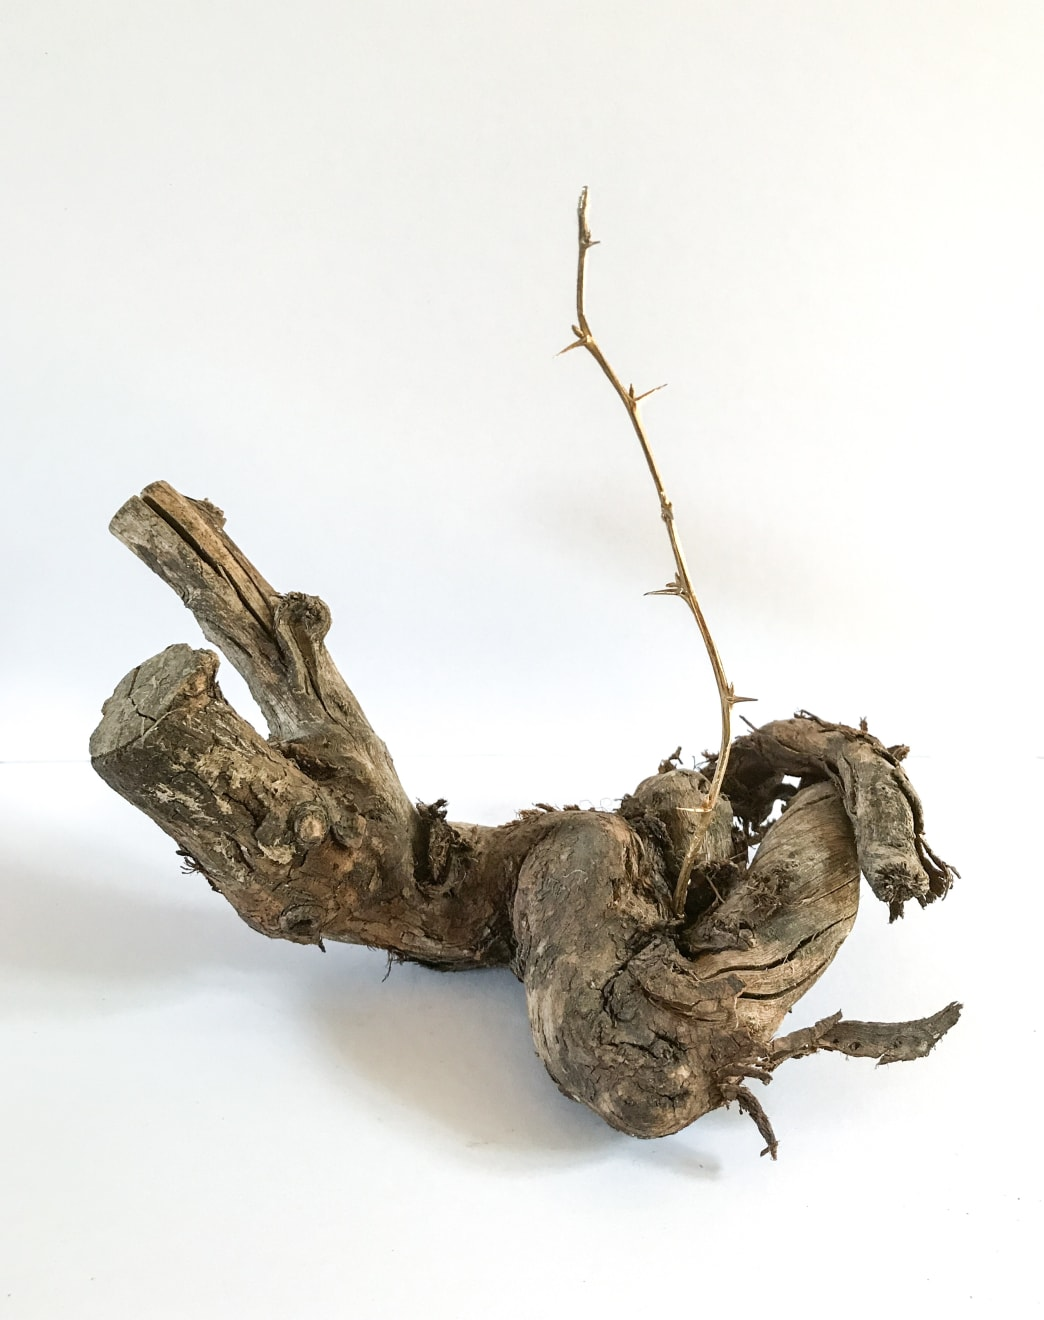 Chantal Powell, Fortuity, Gold plated silver cast of a thorned twig, dead wood, 20 x 22 x 15 cm